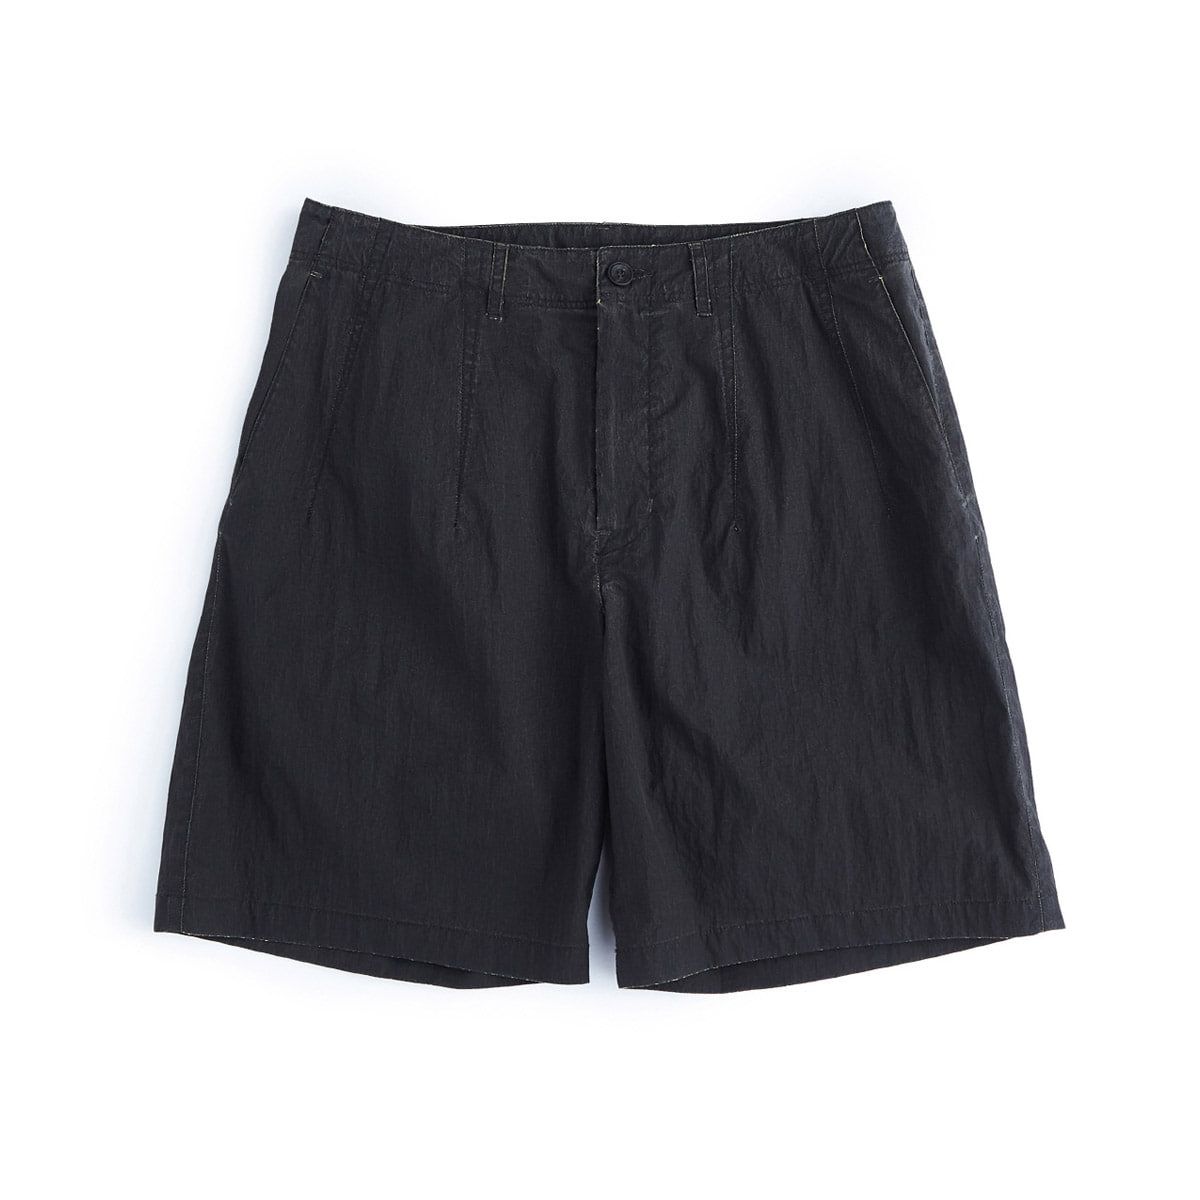 [UNAFFECTED] EASY SHORTS 'CRACKED BLACK'